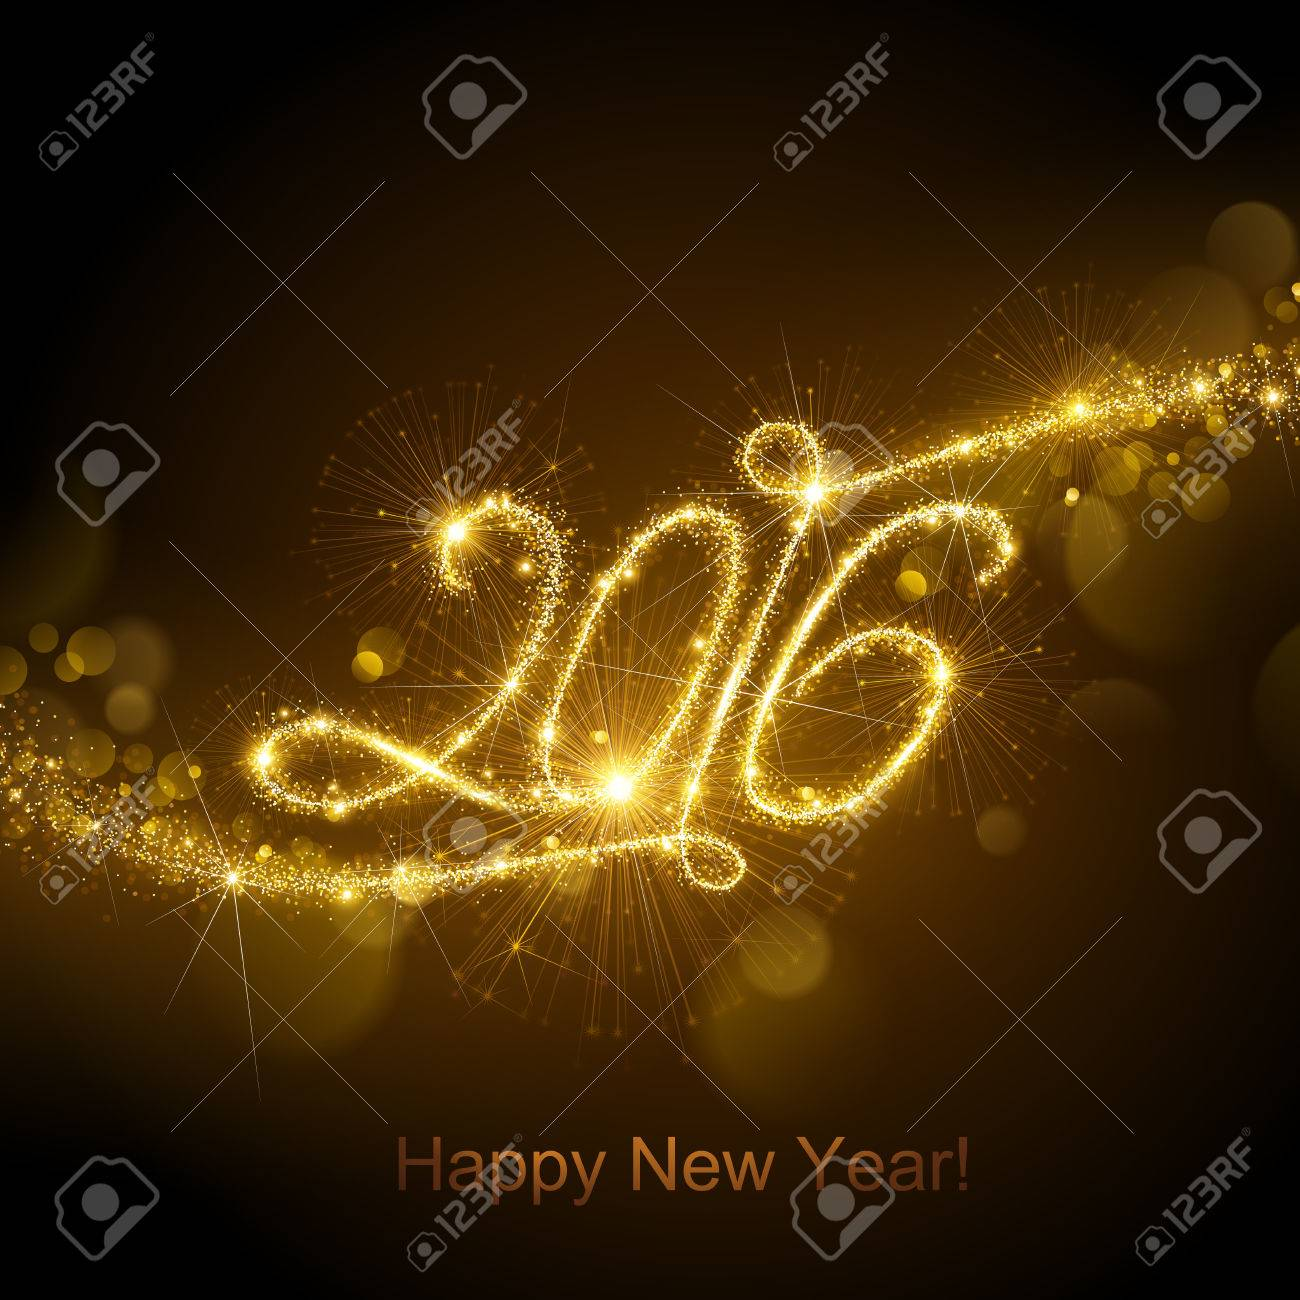 New Year fireworks and confetti 2016. Vector illustration. Standard-Bild - 44614203